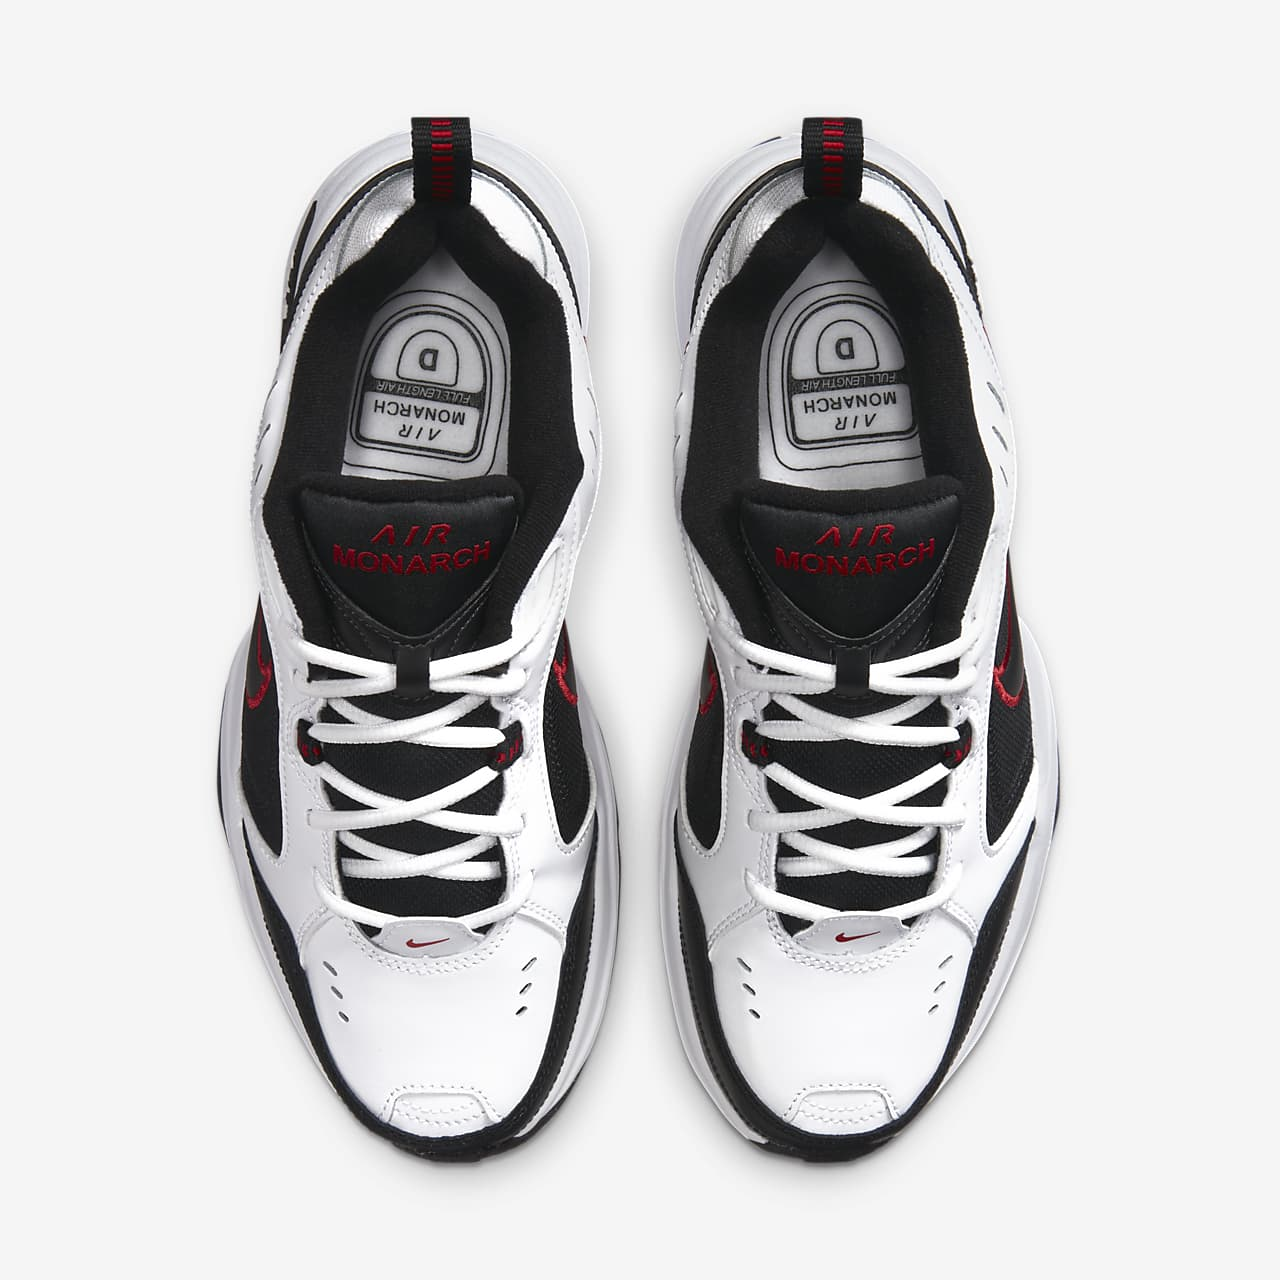 Nike Air Monarch IV LifestyleGym Shoe